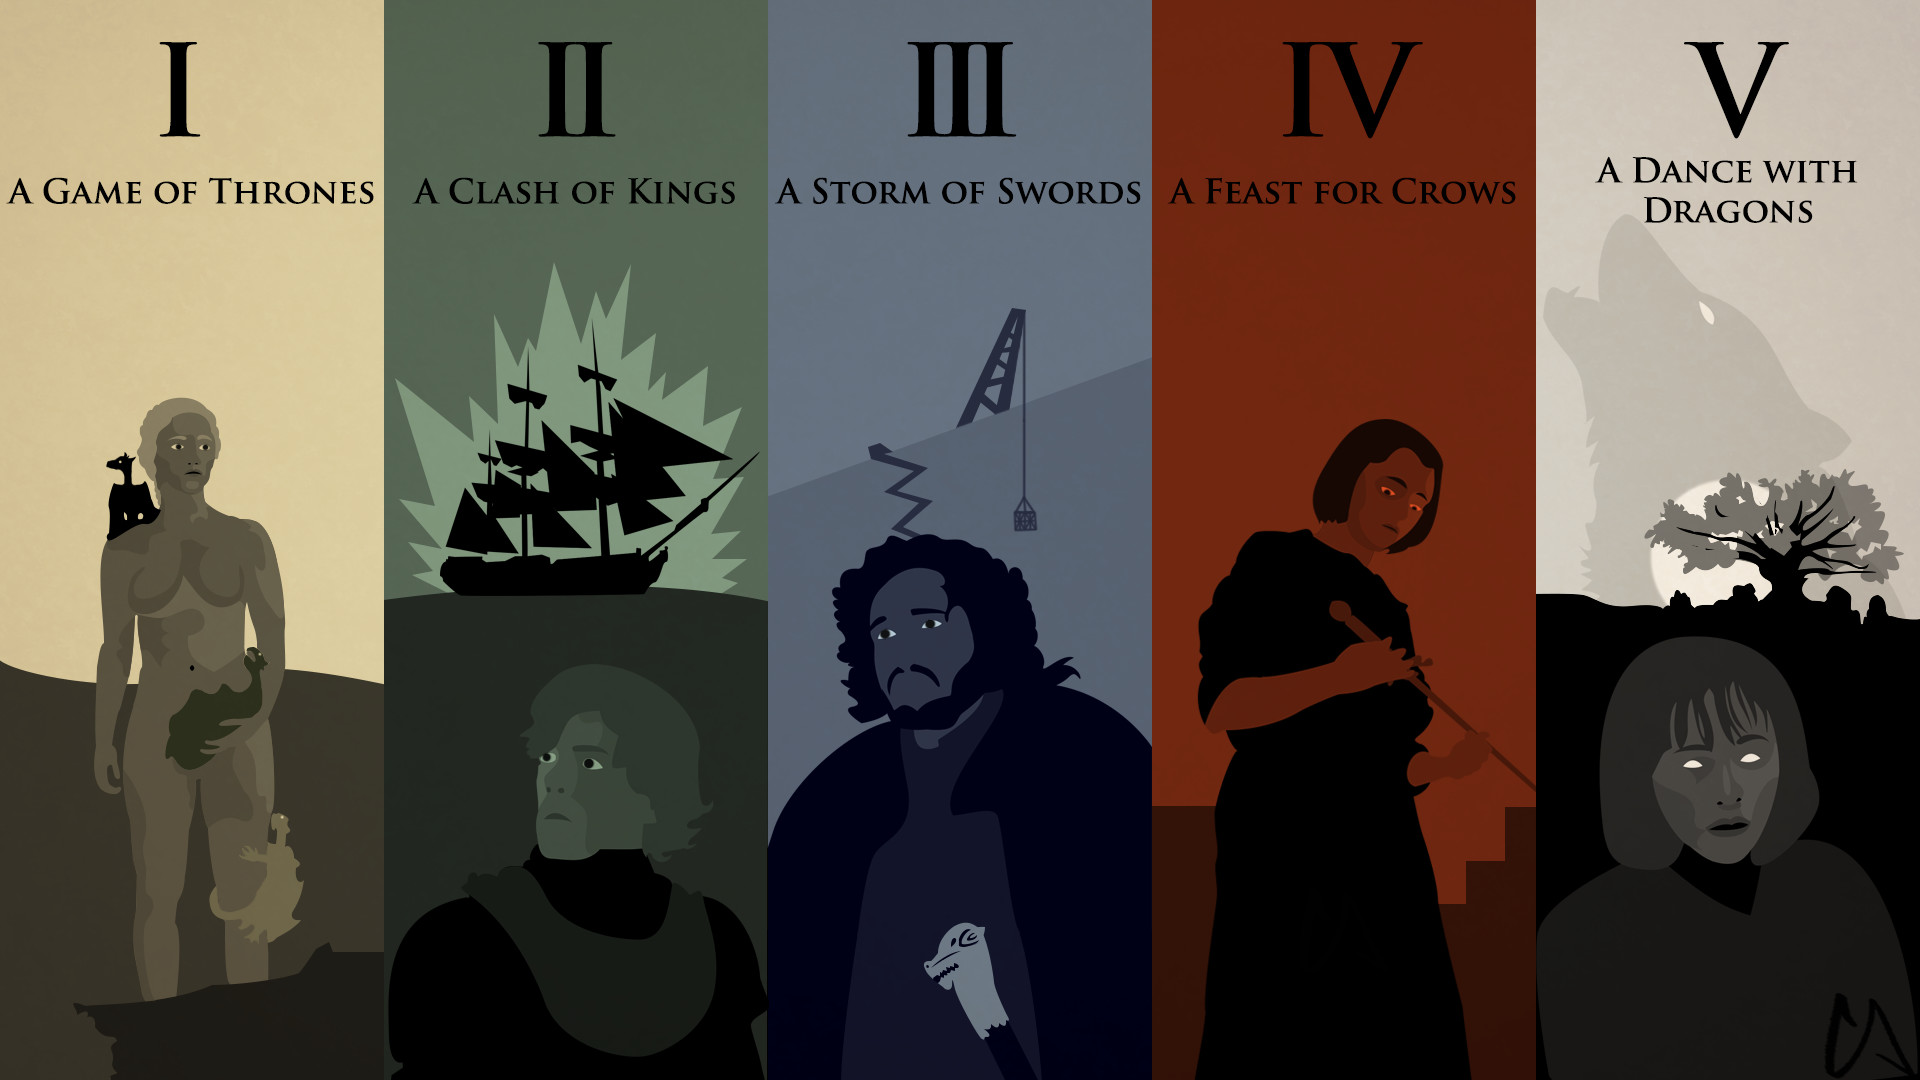 … A Song of Ice and Fire Wallpaper by Conkoon